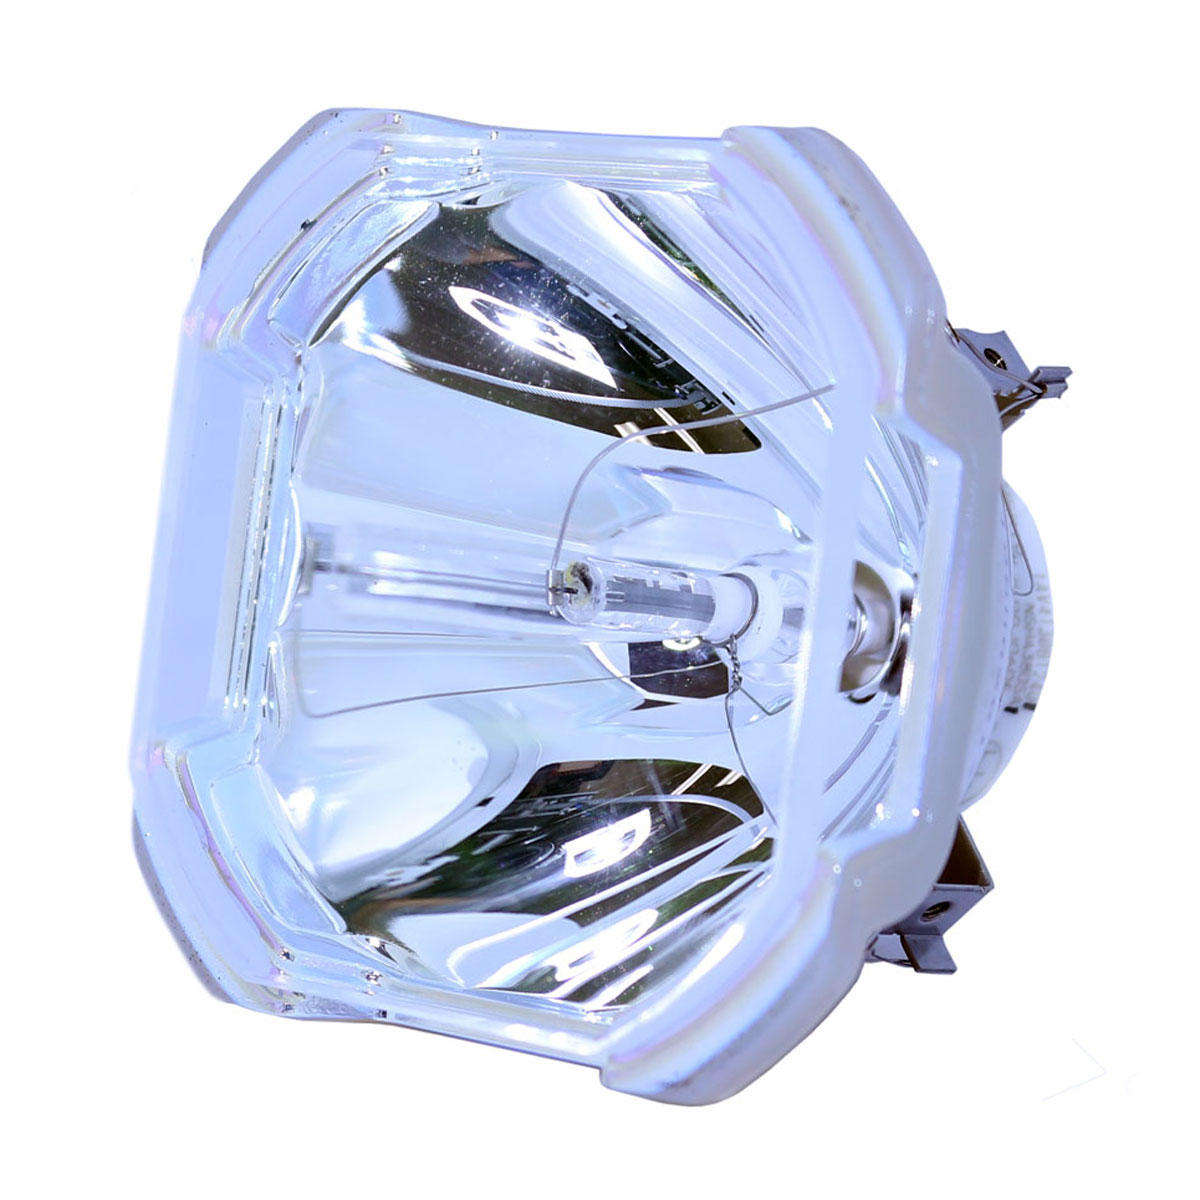 Compatible Bare Bulb POA-LMP147 LMP147 610-350-9051 for SANYO PLC-HF15000L Projector Bulb Lamp Without Housing Free Shipping  compatible bare bulb poa lmp57 lmp57 610 308 3117 for sanyo plc sw30 plc sw35 projector lamp bulb without housing free shipping